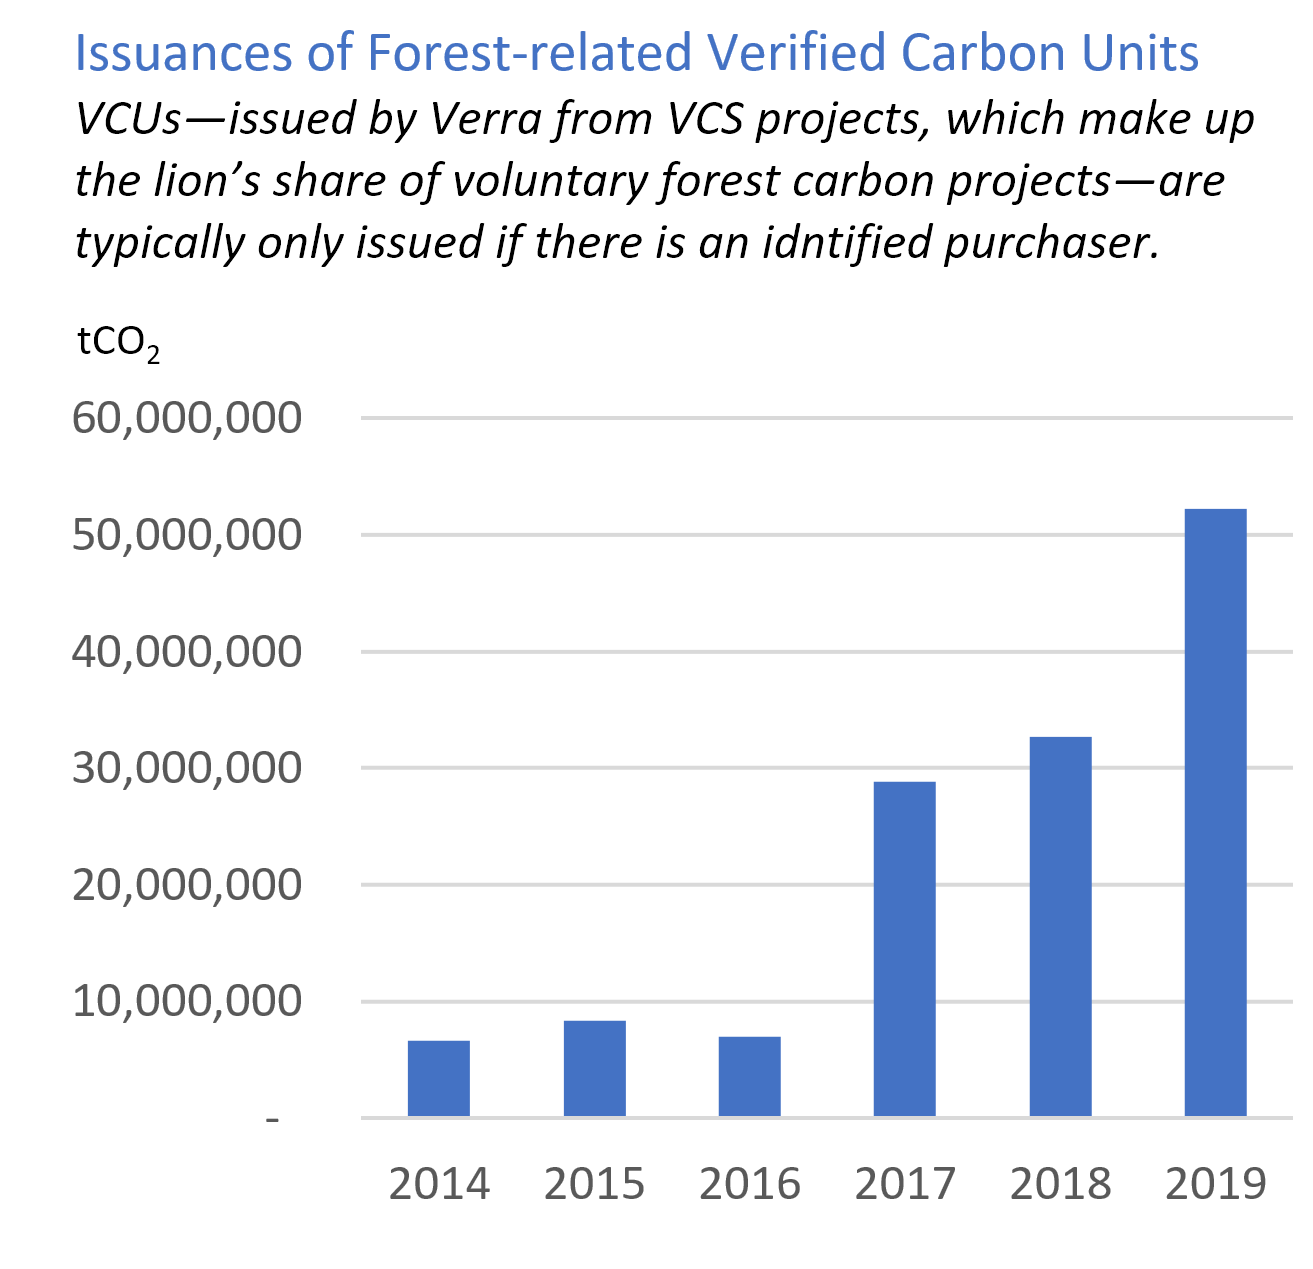 https://www.ecosystemmarketplace.com/wp-content/uploads/2019/11/VER-Forest-Issuances-1.png